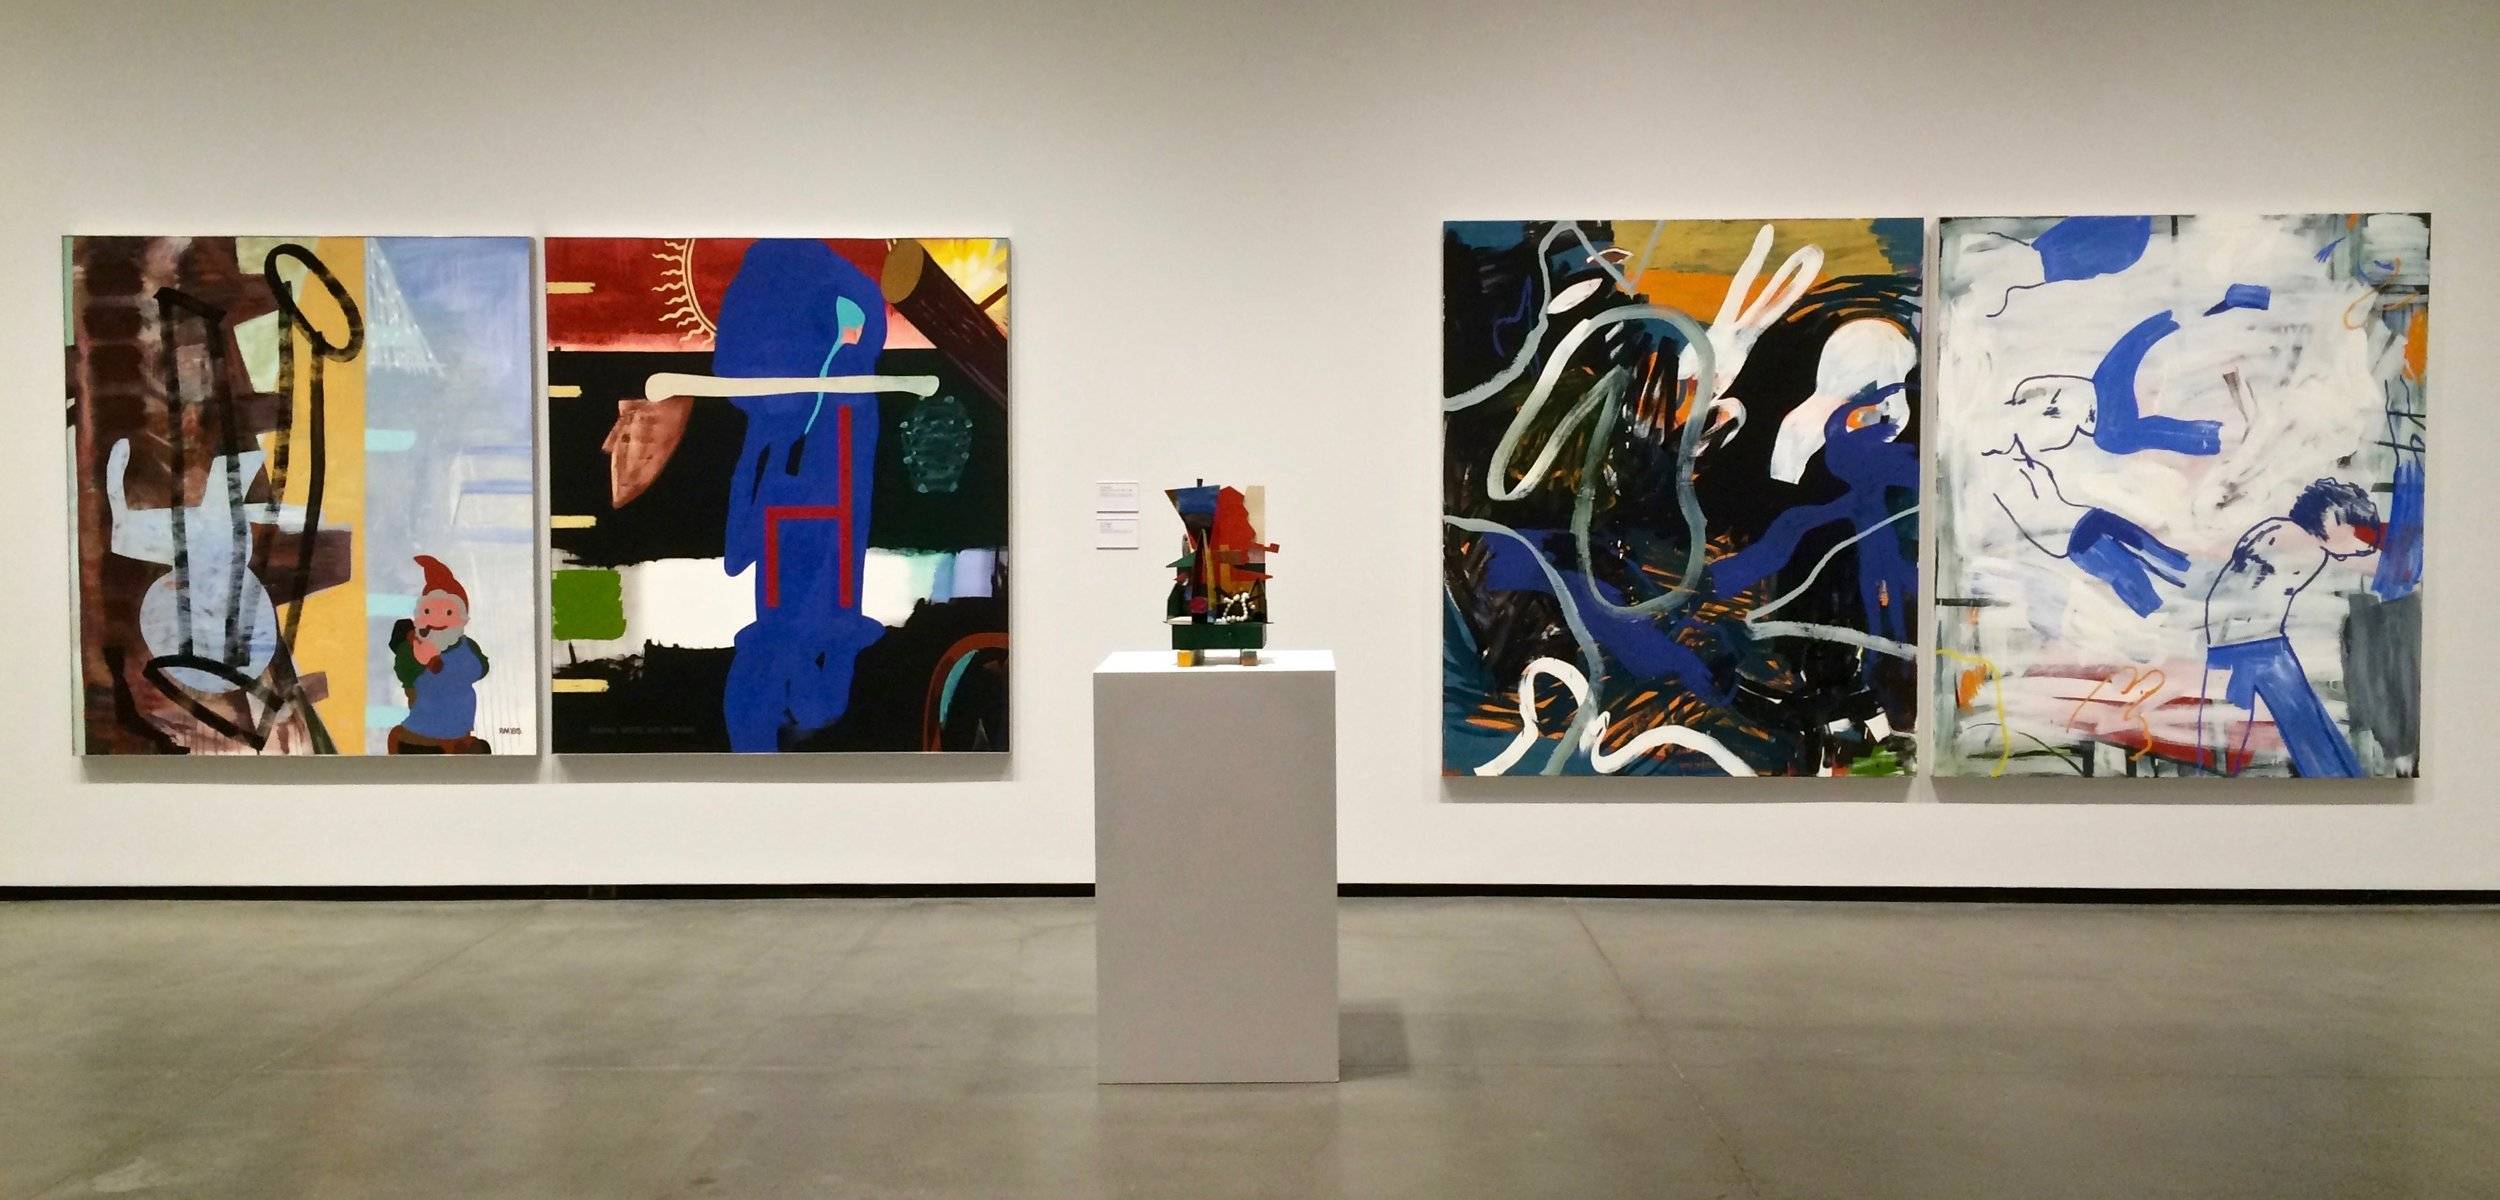 According to the artists, this grouping was their favourite of the exhibition.  Painting Nature with a Mirror , 1985 by Ron Moppett (left)  Match , 1986 by Ron Moppett (sculpture)  The Bells , 2010 by Damian Moppett (right)